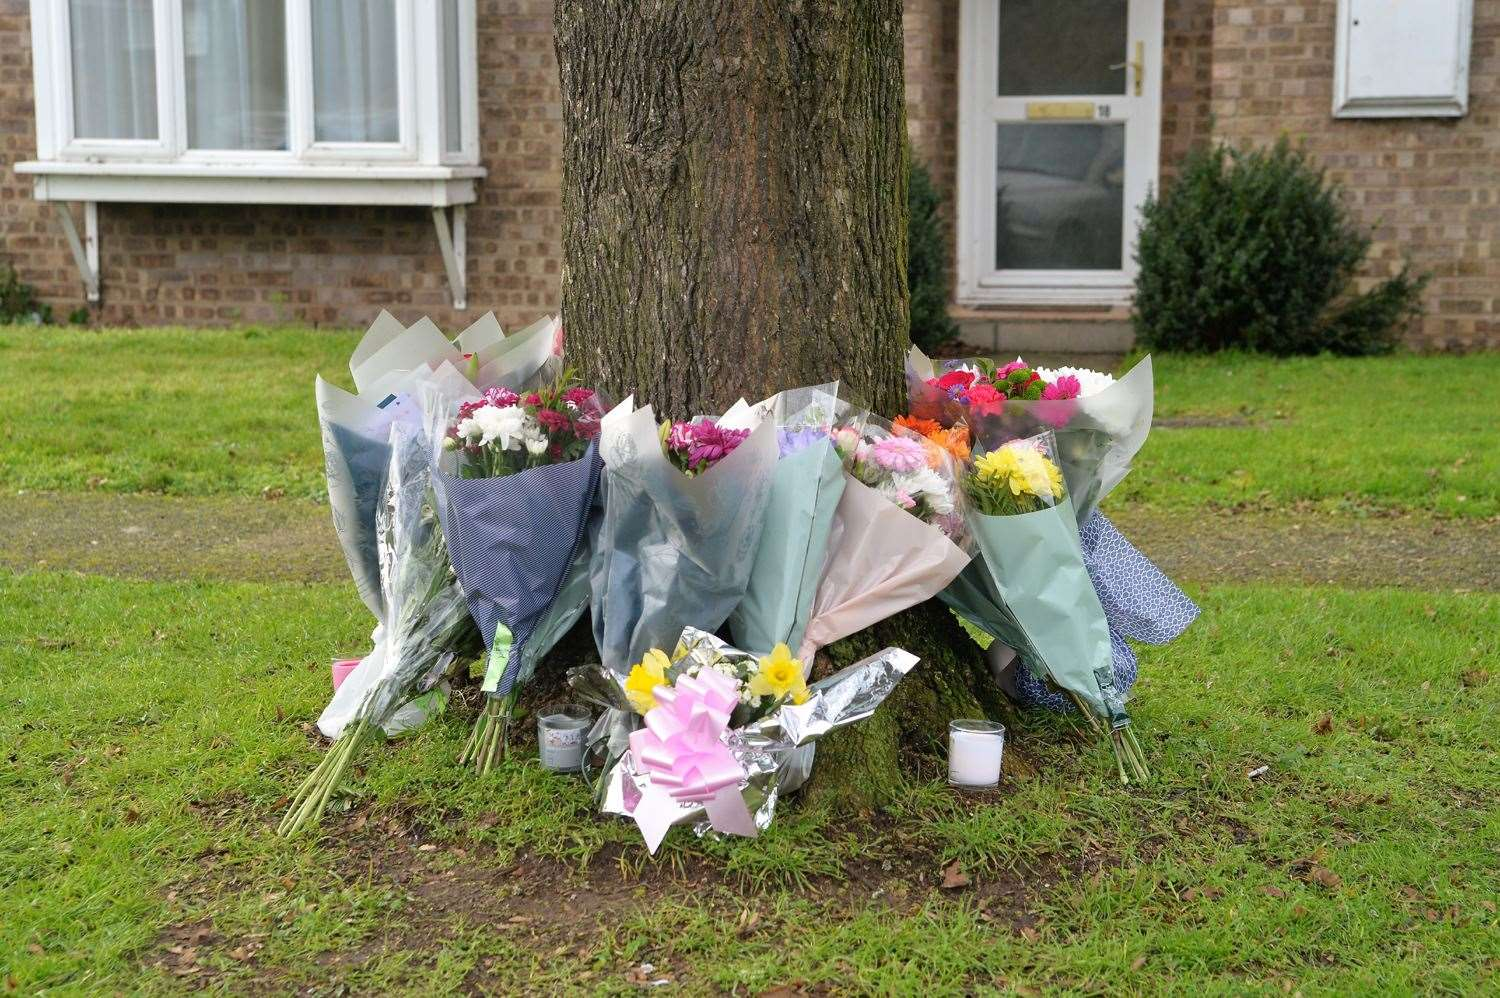 Floral tributes for Clare Nash